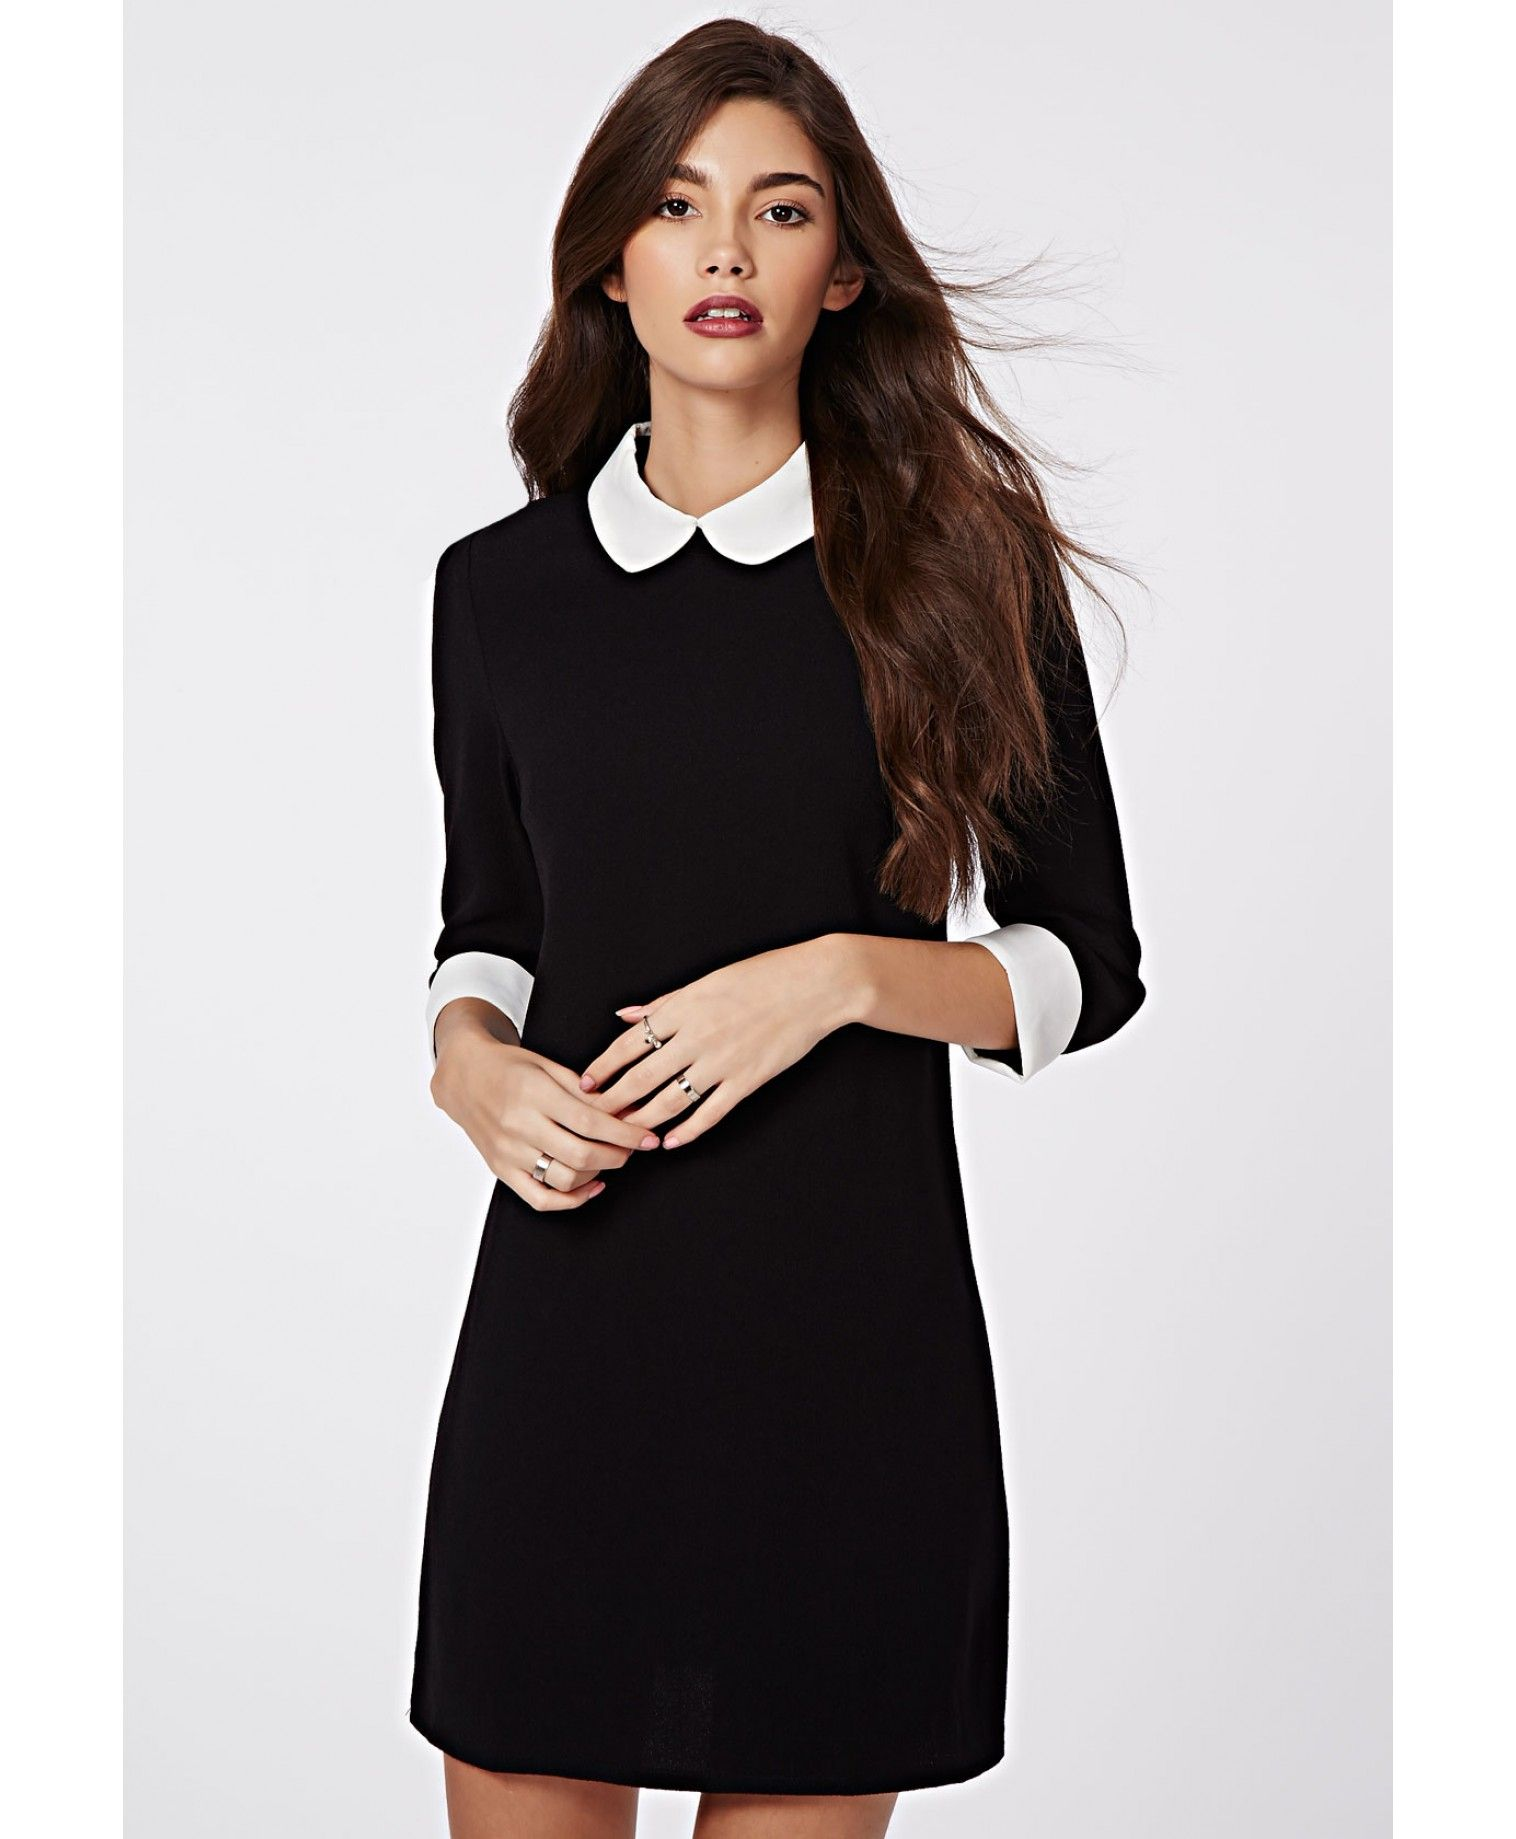 Peter Pan Collar Shift Dress Monochrome ...  e1ce3da0dada